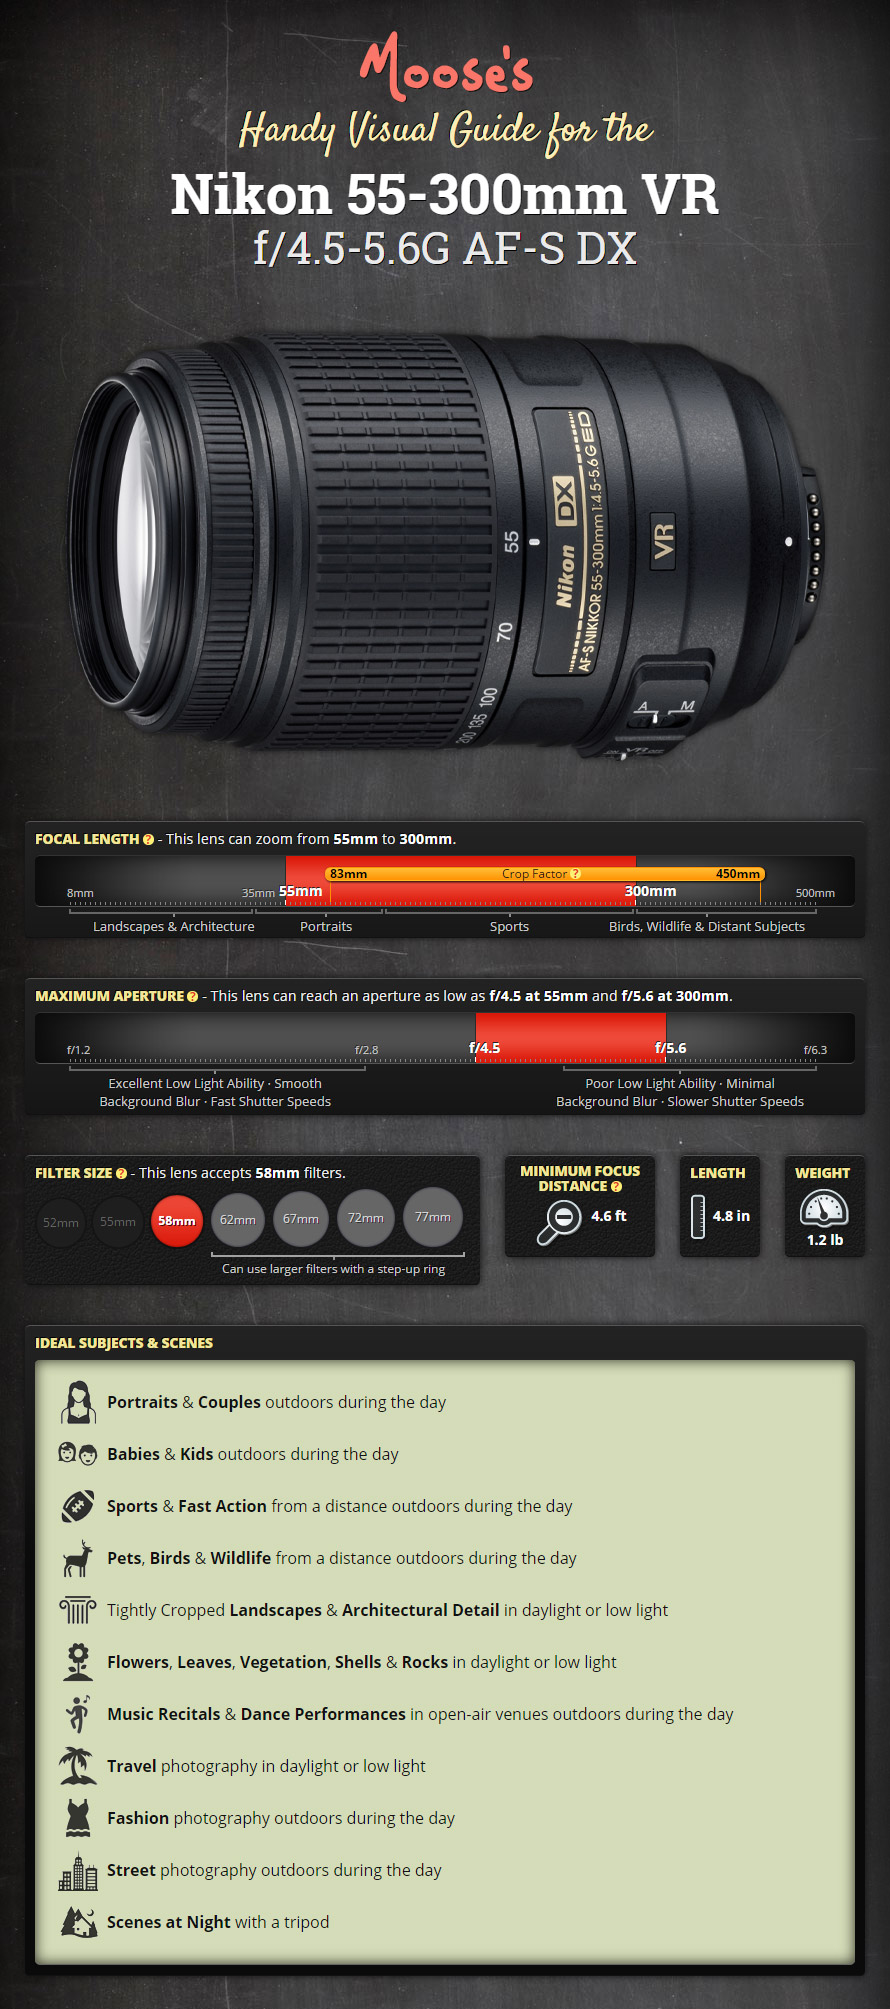 Moose's Visual Guide and Review for the Nikon 55-300mm VR